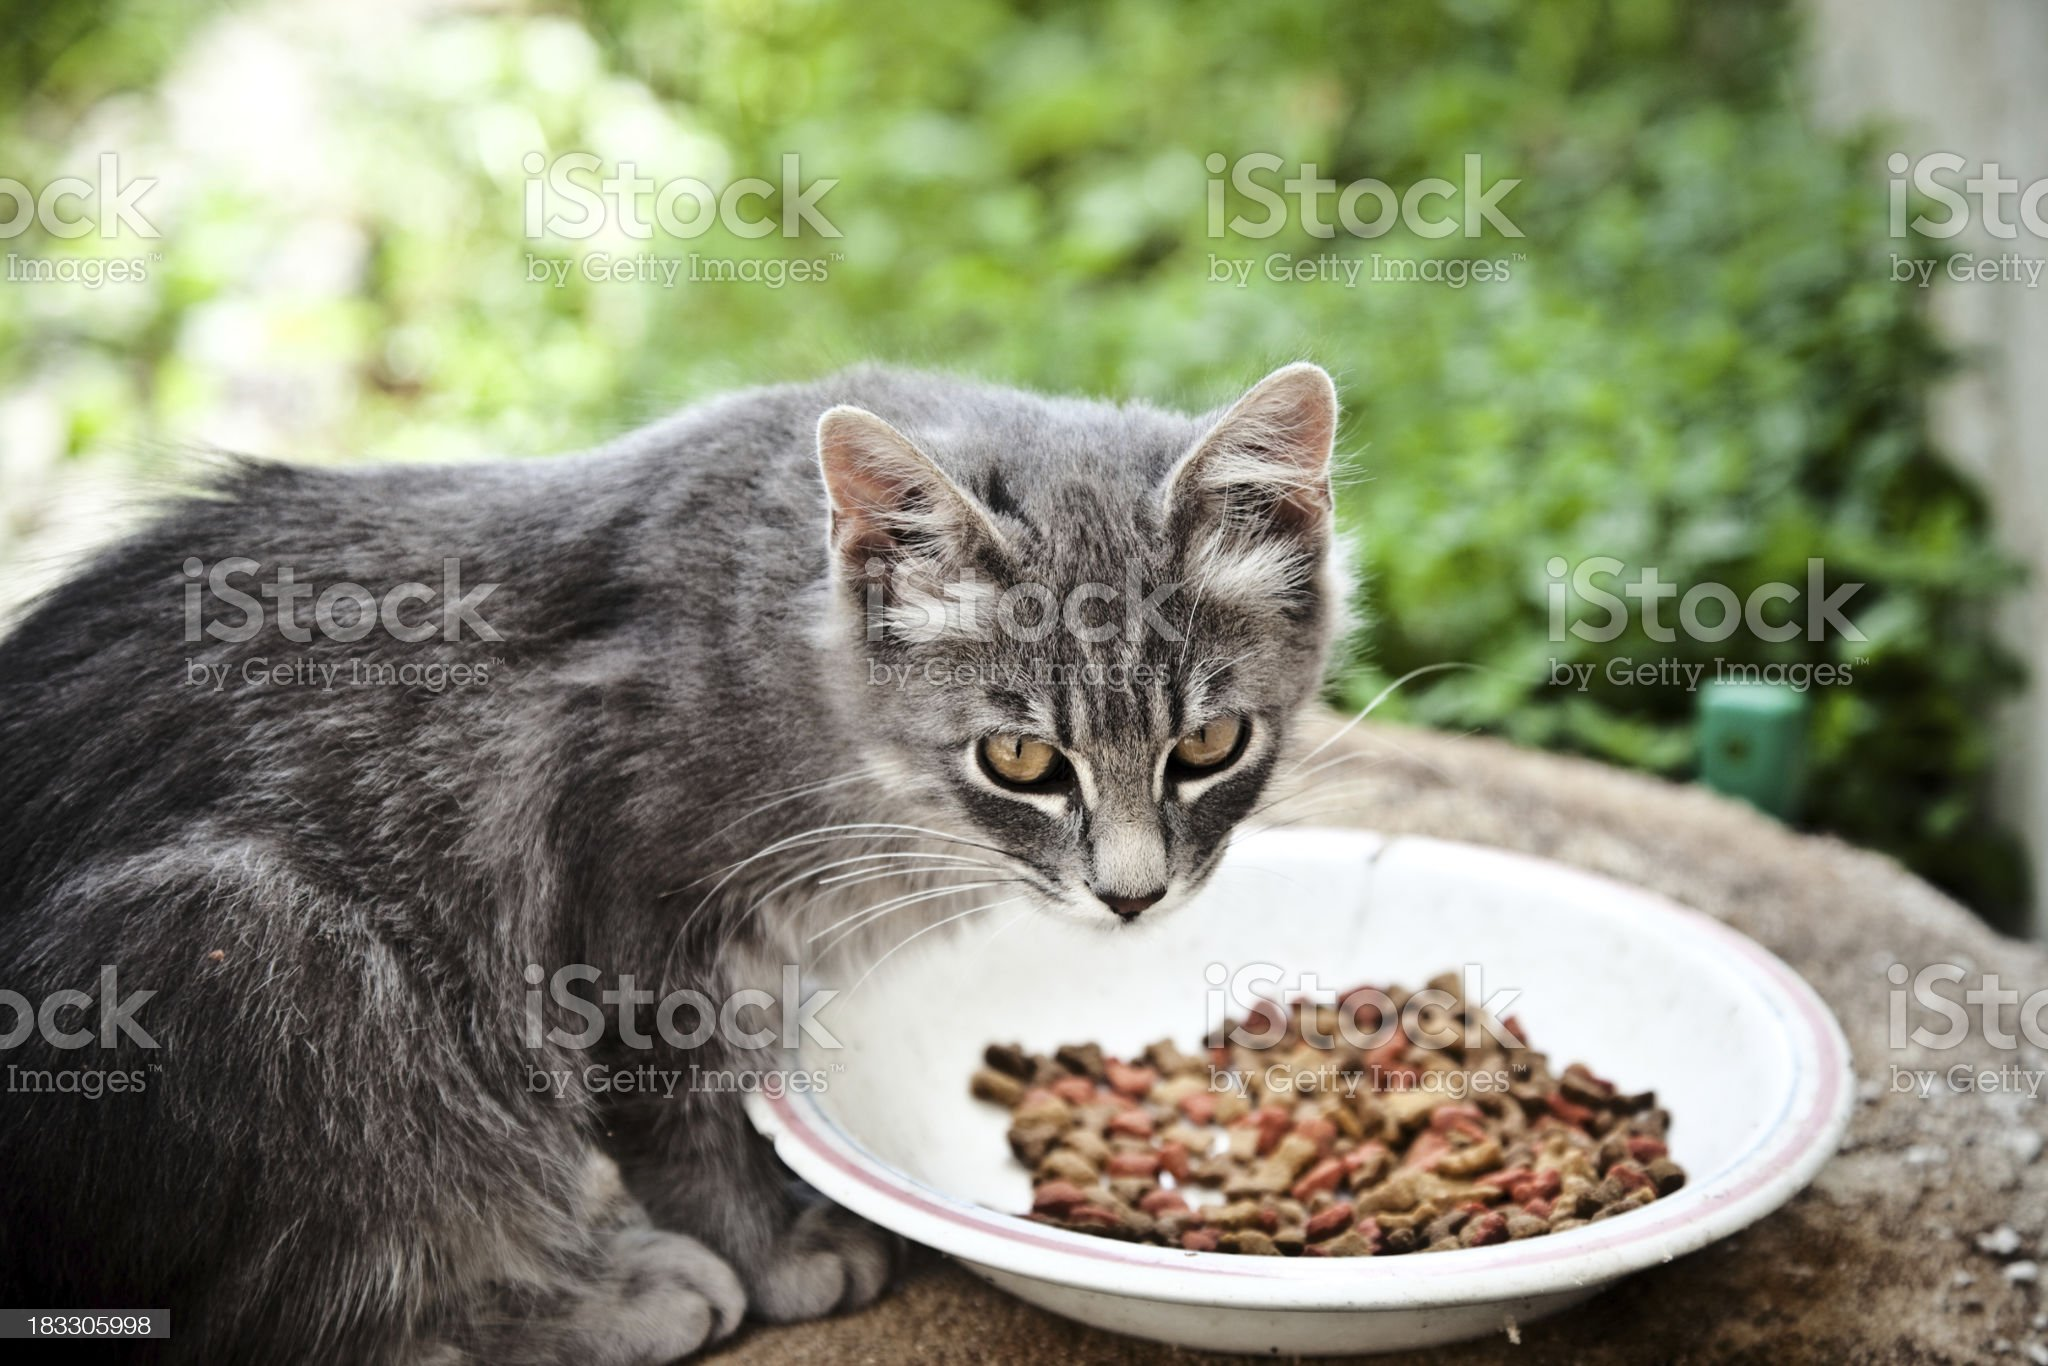 Eating Alley Cat royalty-free stock photo